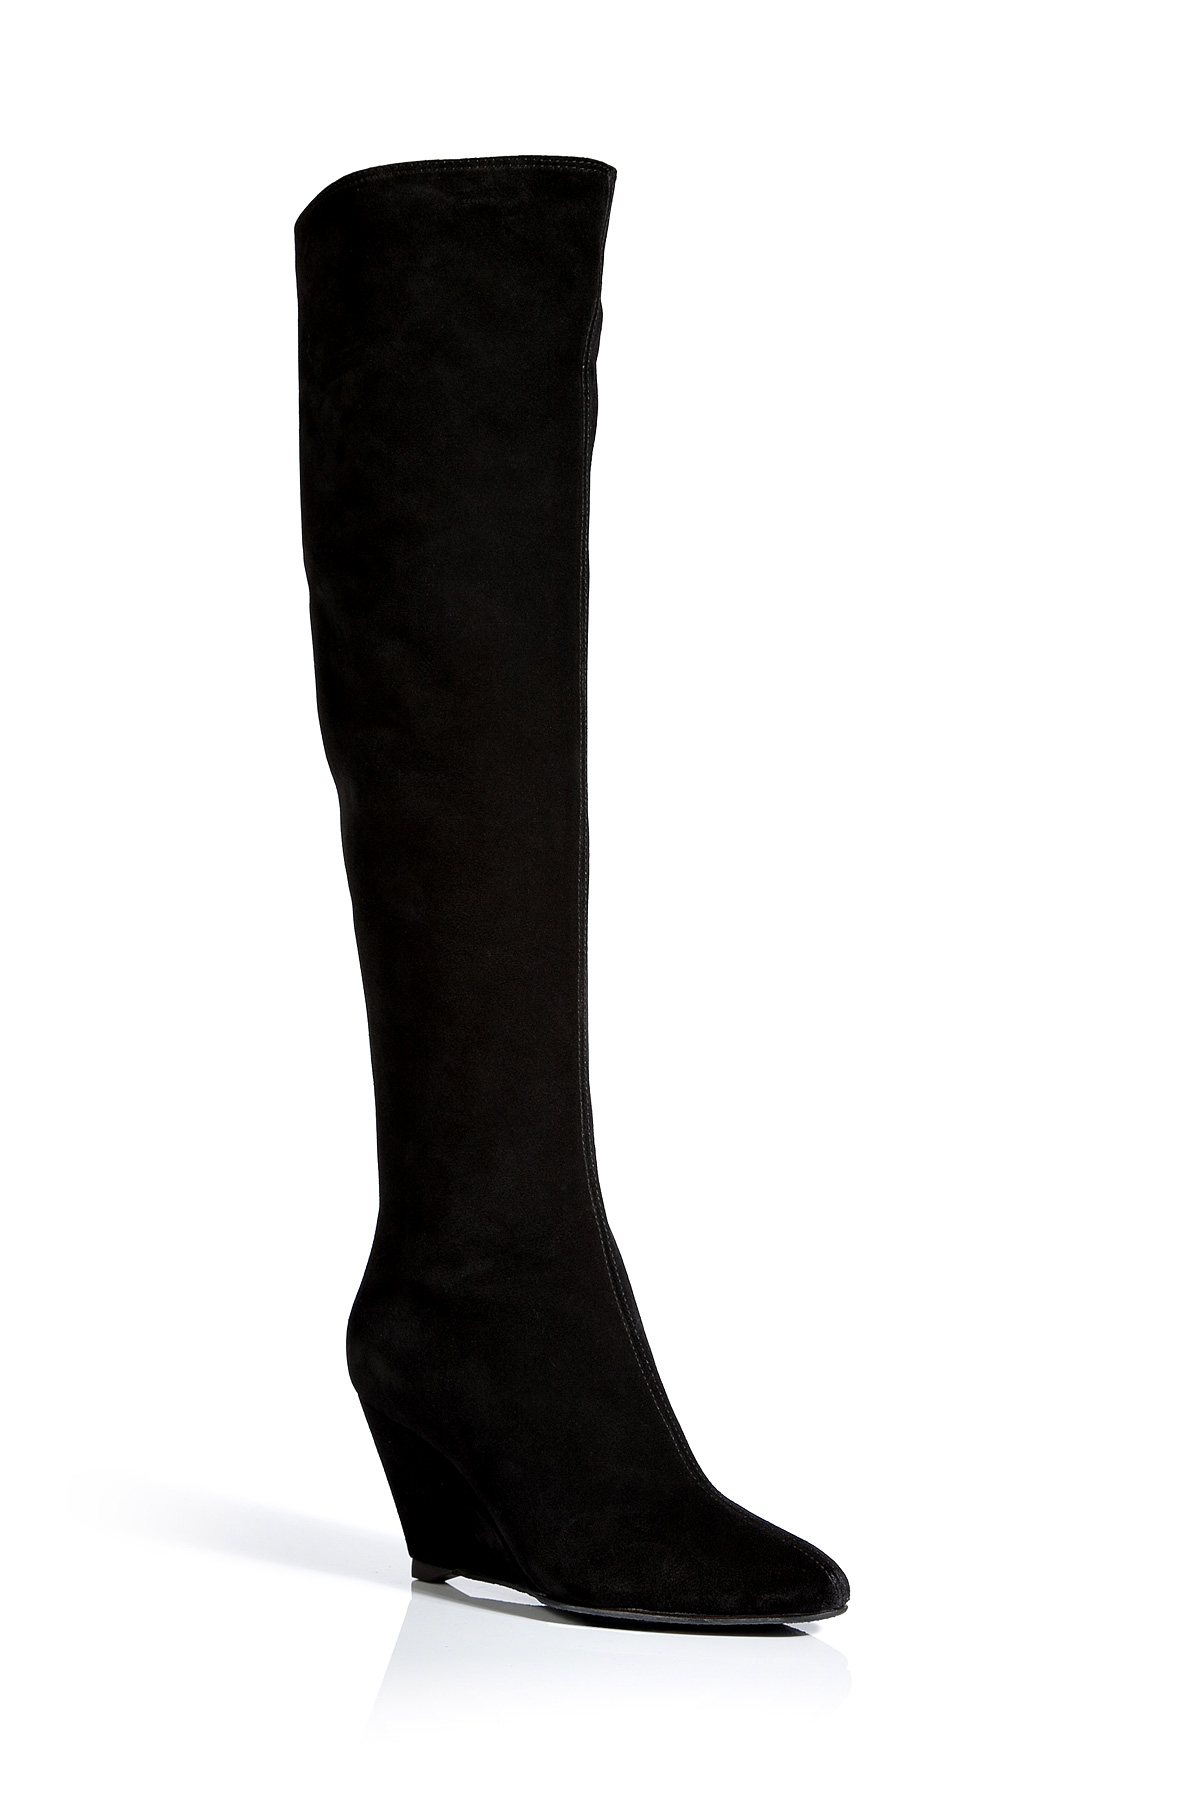 Giuseppe Zanotti Knee-High Wedge Boots with mastercard sale buy buy cheap discounts cheap perfect ocYEhad